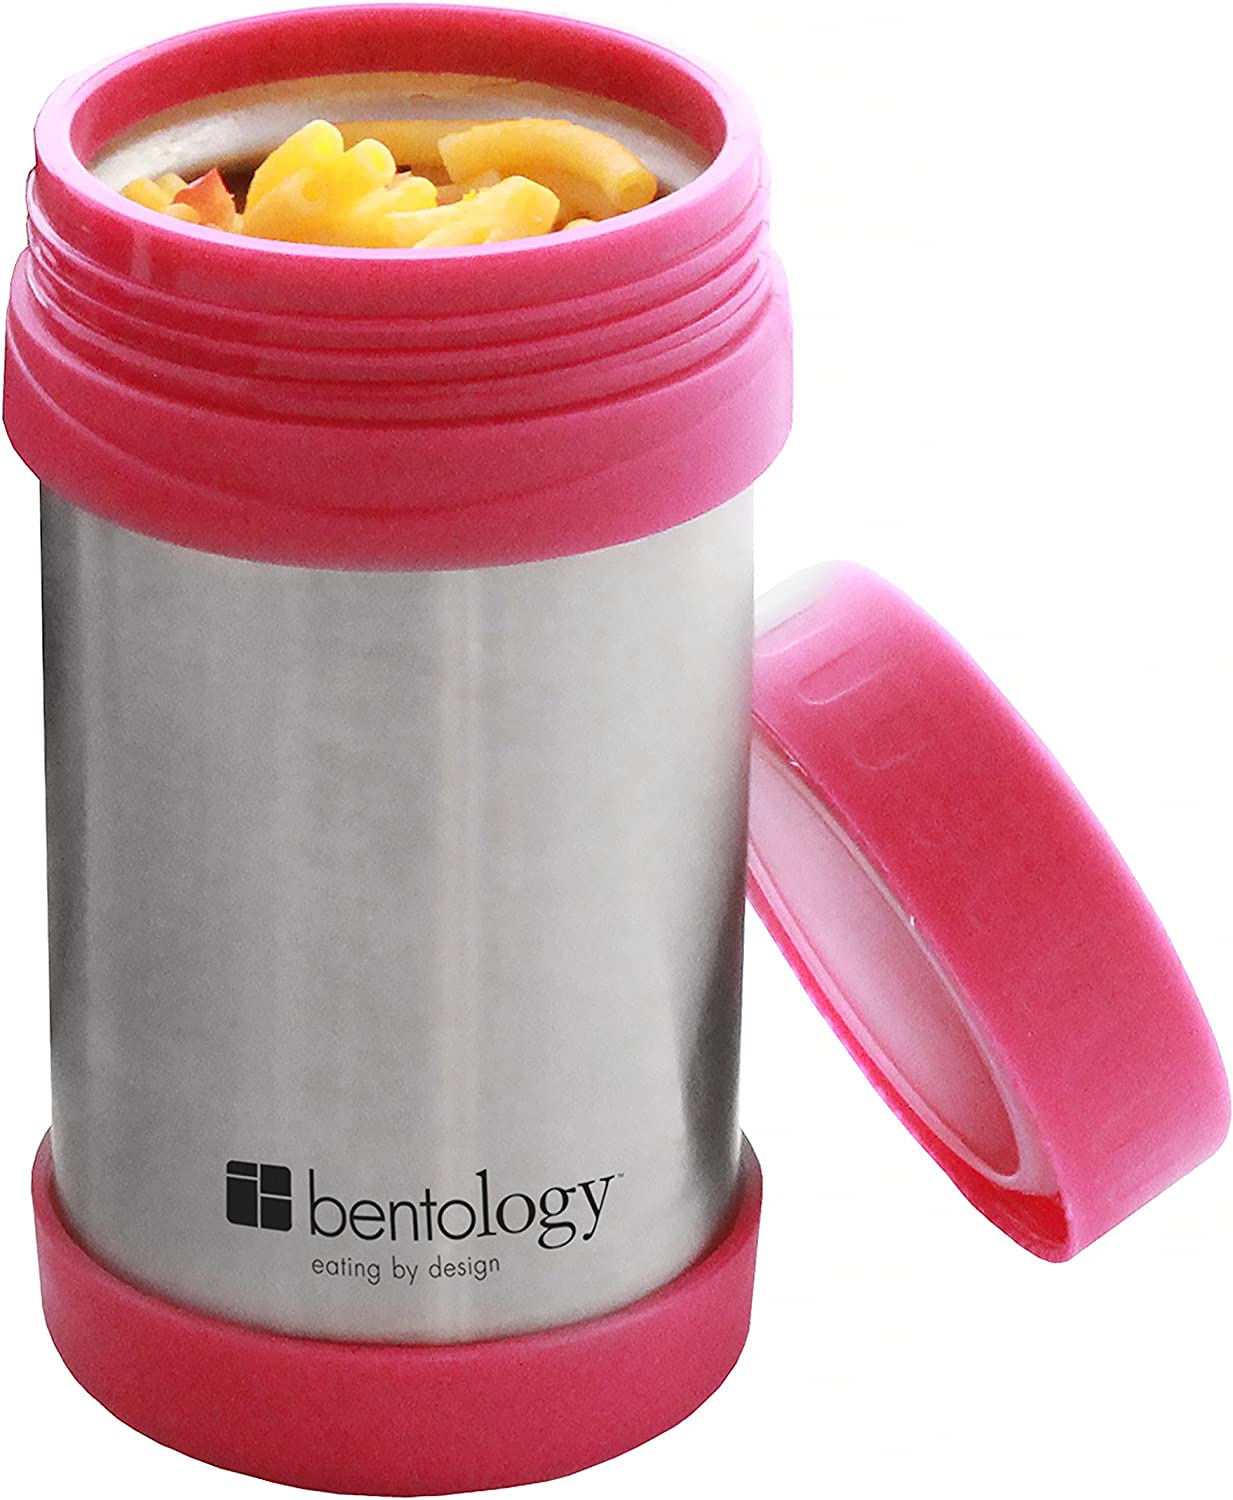 Bentology Stainless Steel Vacuum Insulated Food Jar - 17 oz Pink - Large Lunch Jar for Soup and more - Contains No Phthalates, BPA, or PVC